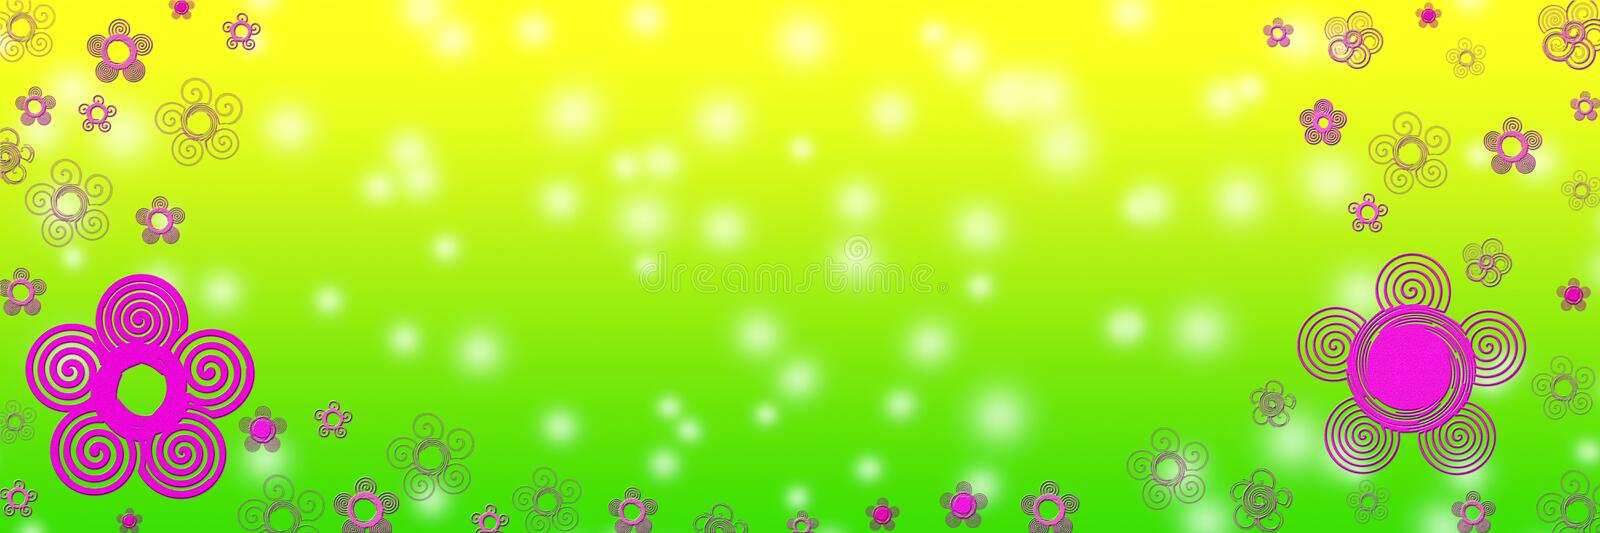 Abstract Pink Flowers in Blurred Green and Yellow Background royalty free stock photo